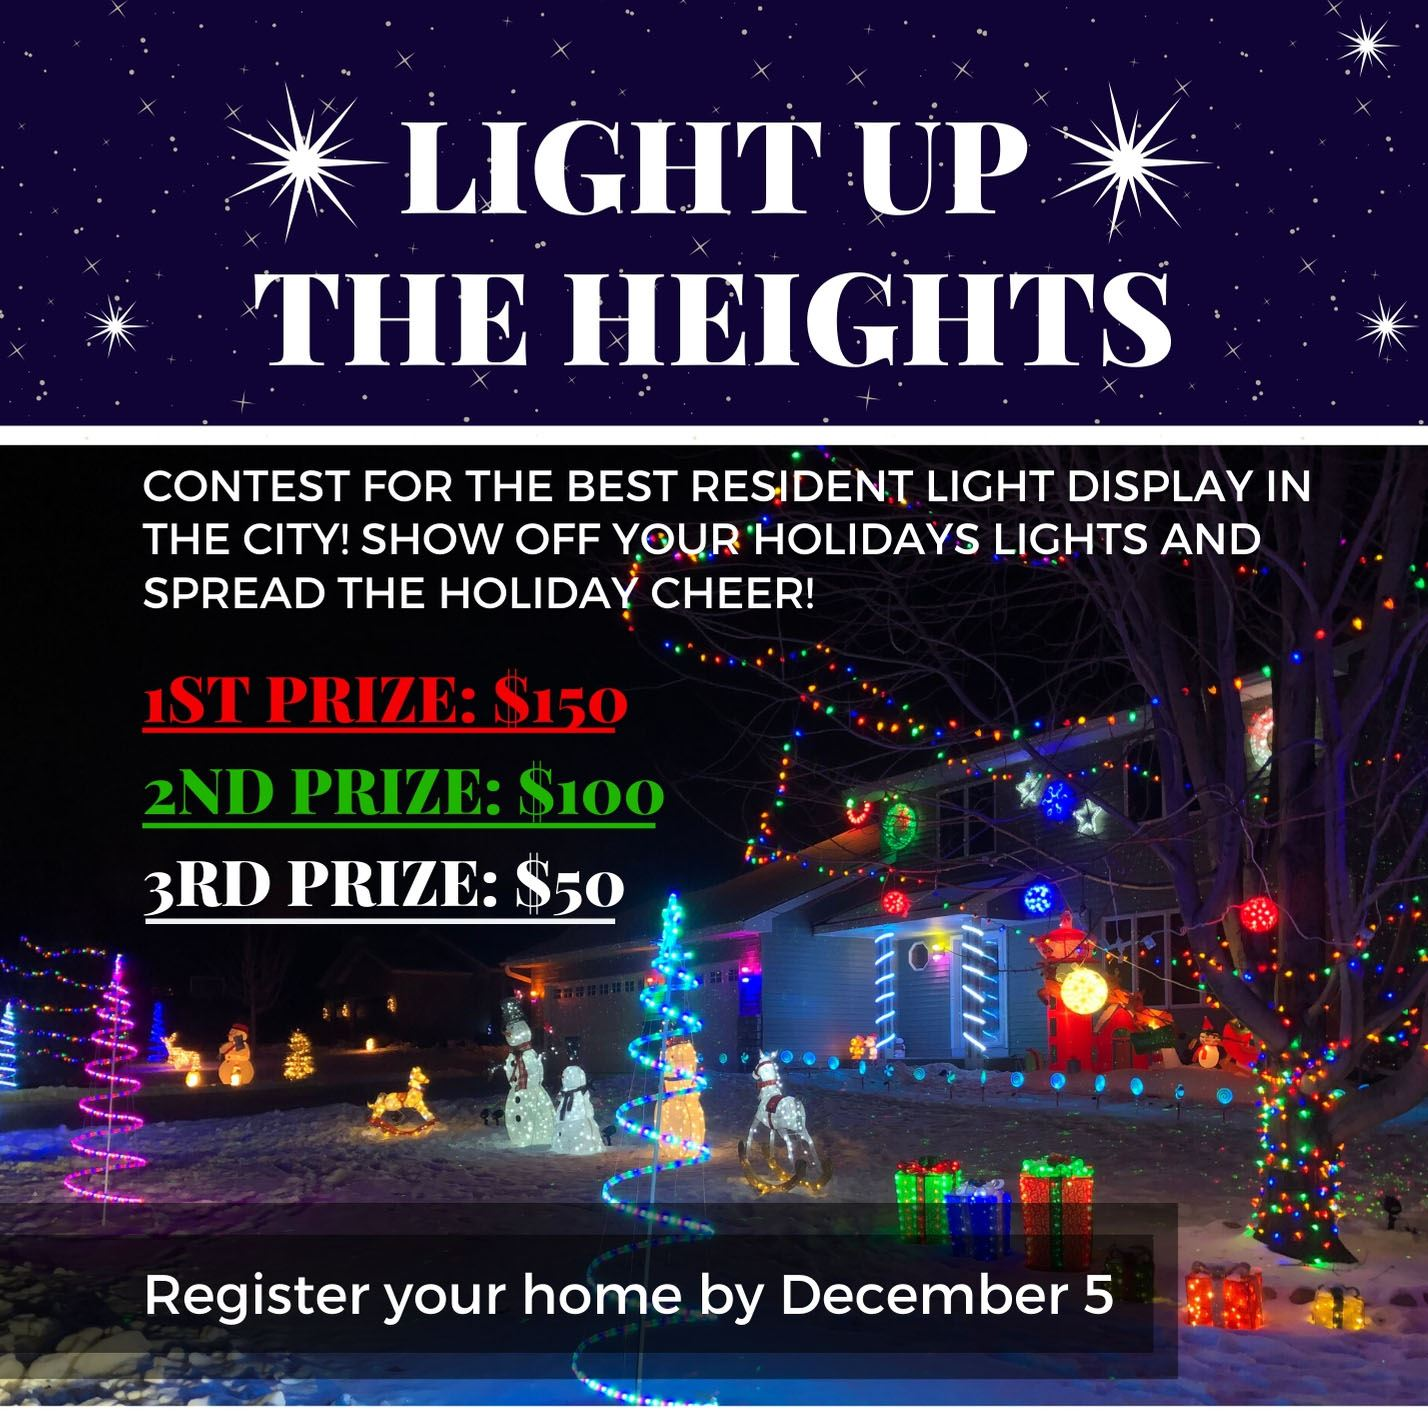 HIH - Light Up the Heights Contest 2019 - FINAL